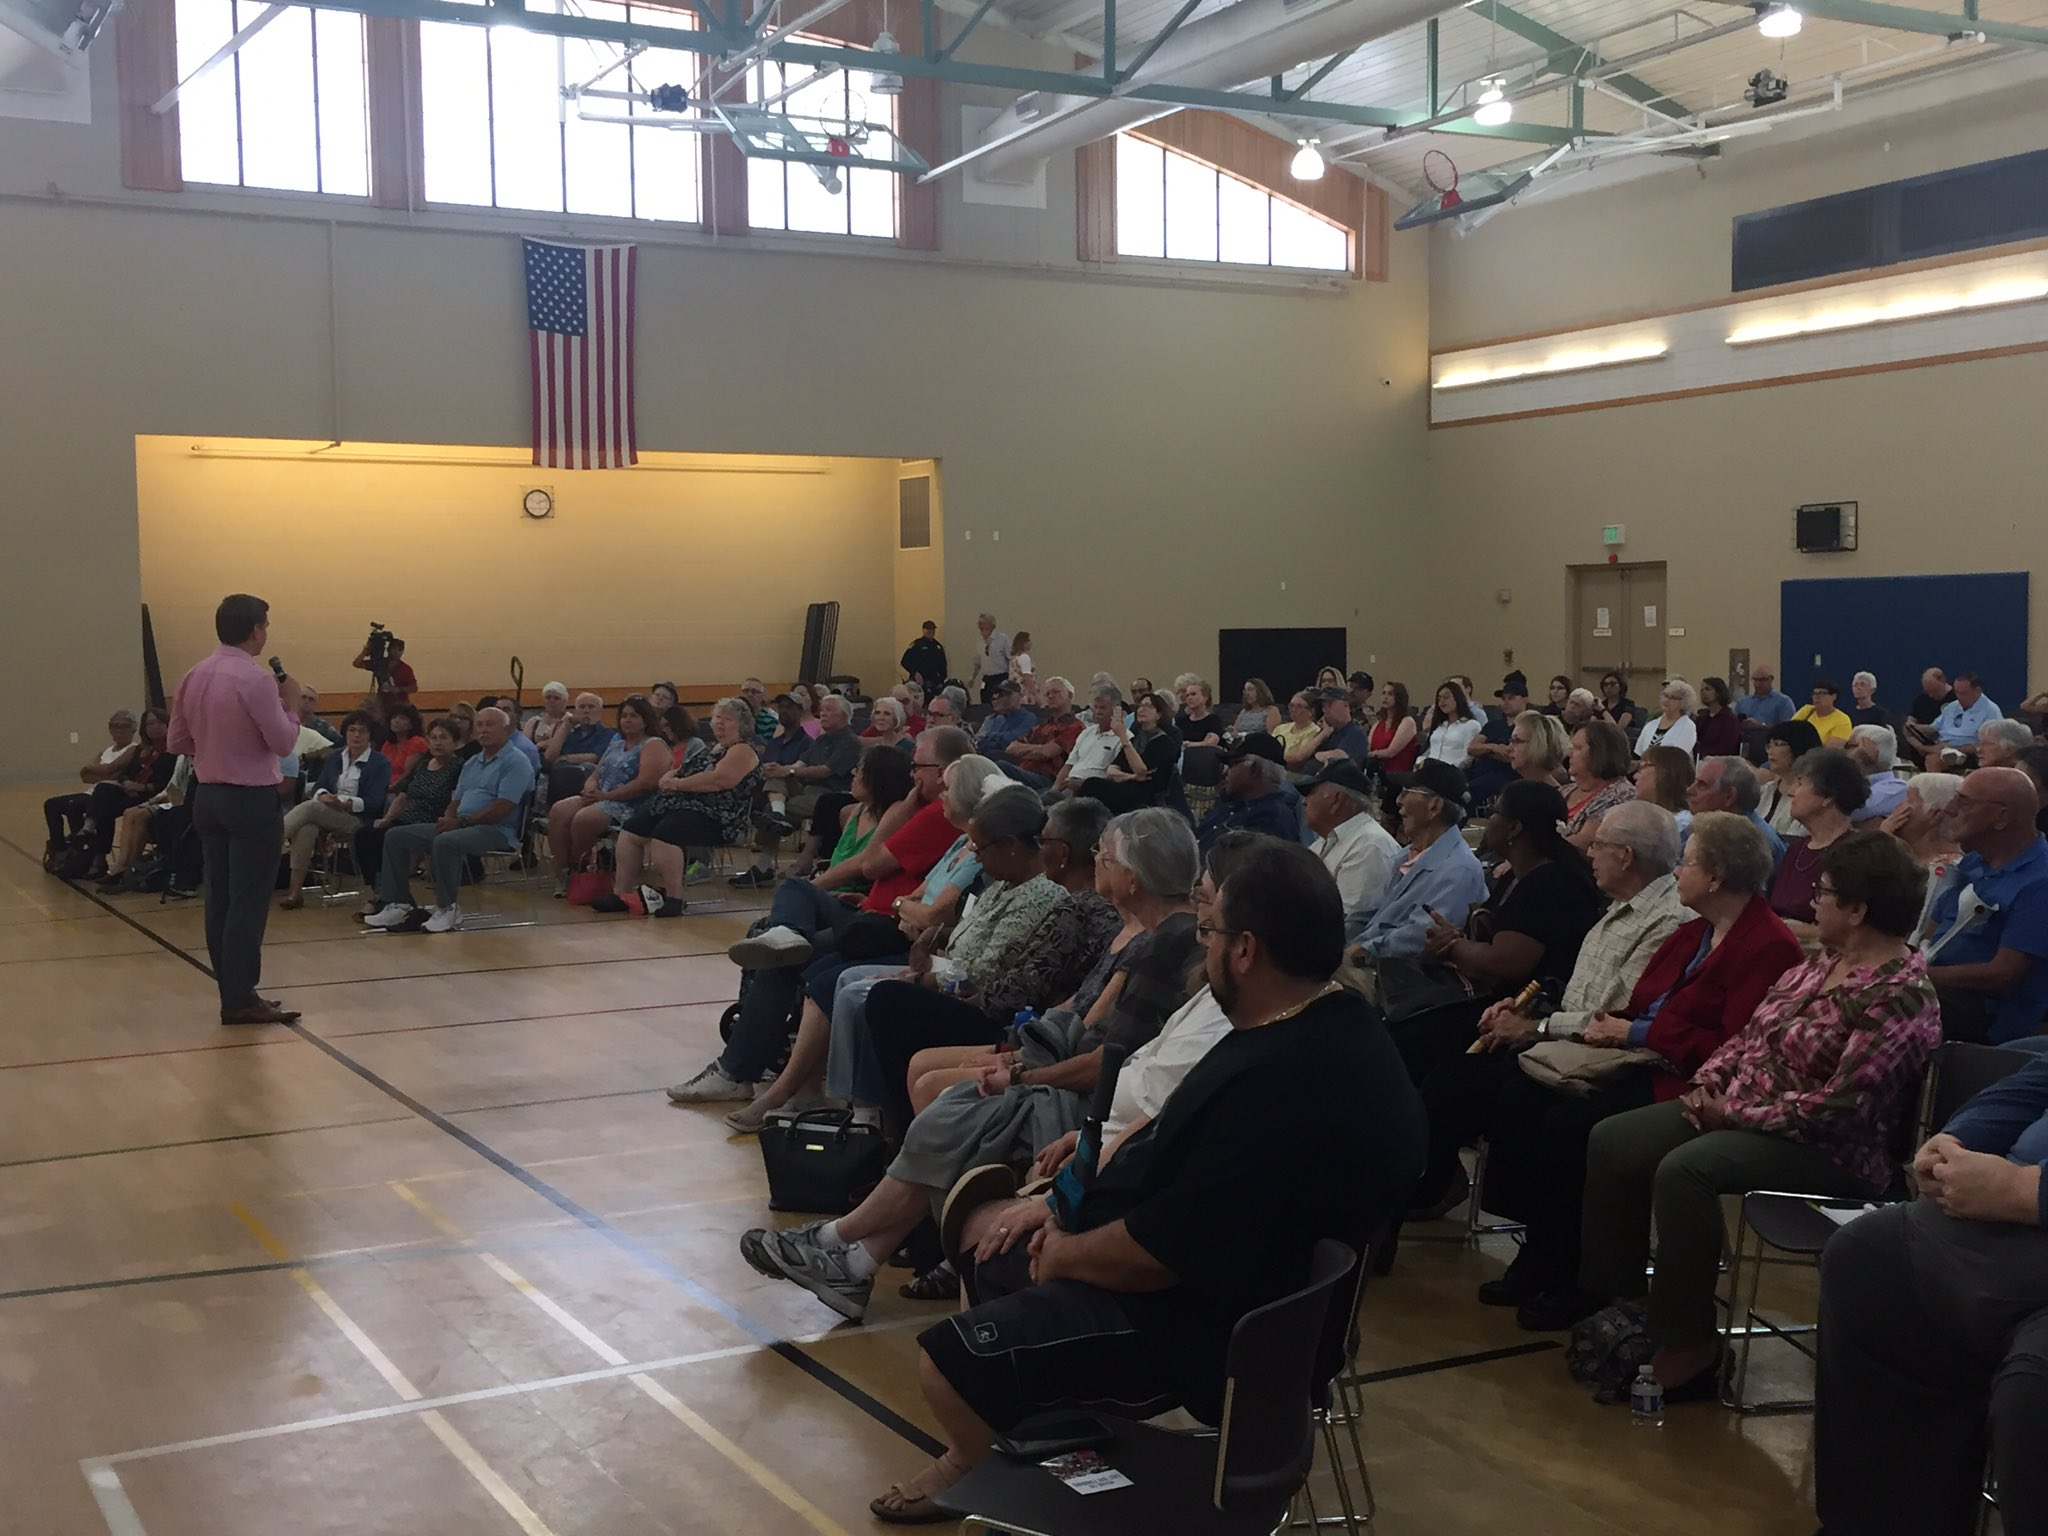 We're off and running with our second #CA15 town hall of the day, at Union City's Mark Green Sports Center. https://t.co/uodfbxUr39